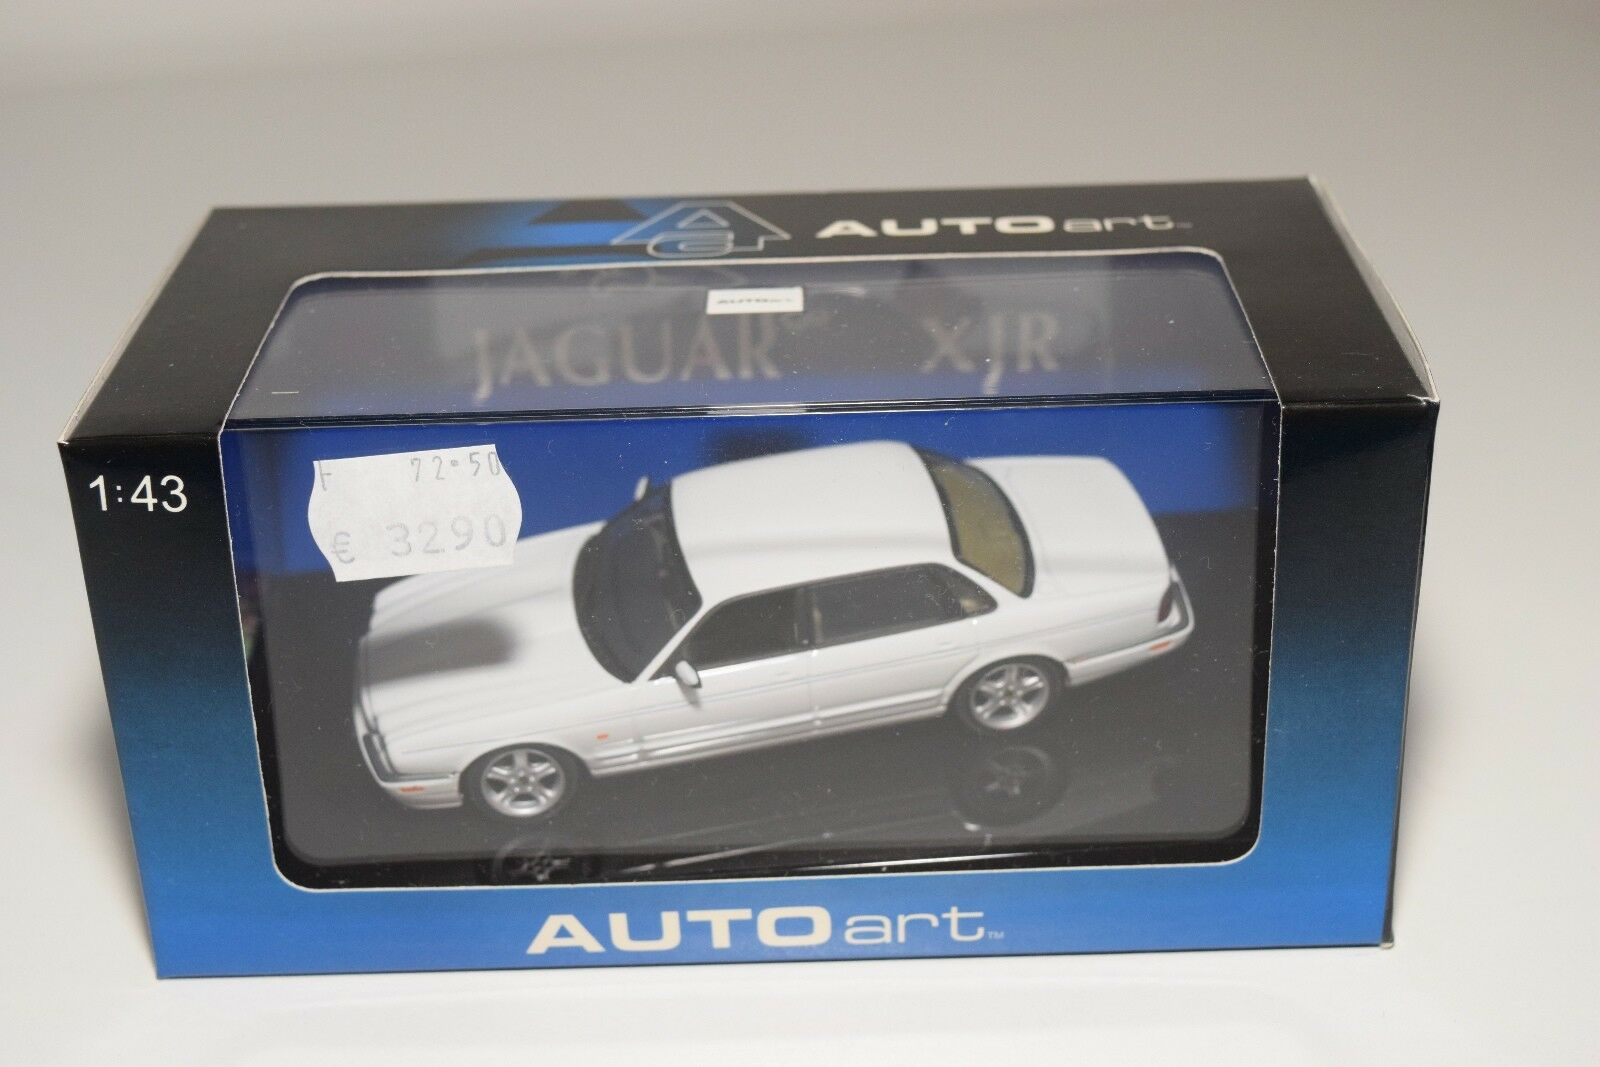 AUTOART AUTO ART 53602  JAGUAR XJR blanc MINT BOXED RARE  authentique